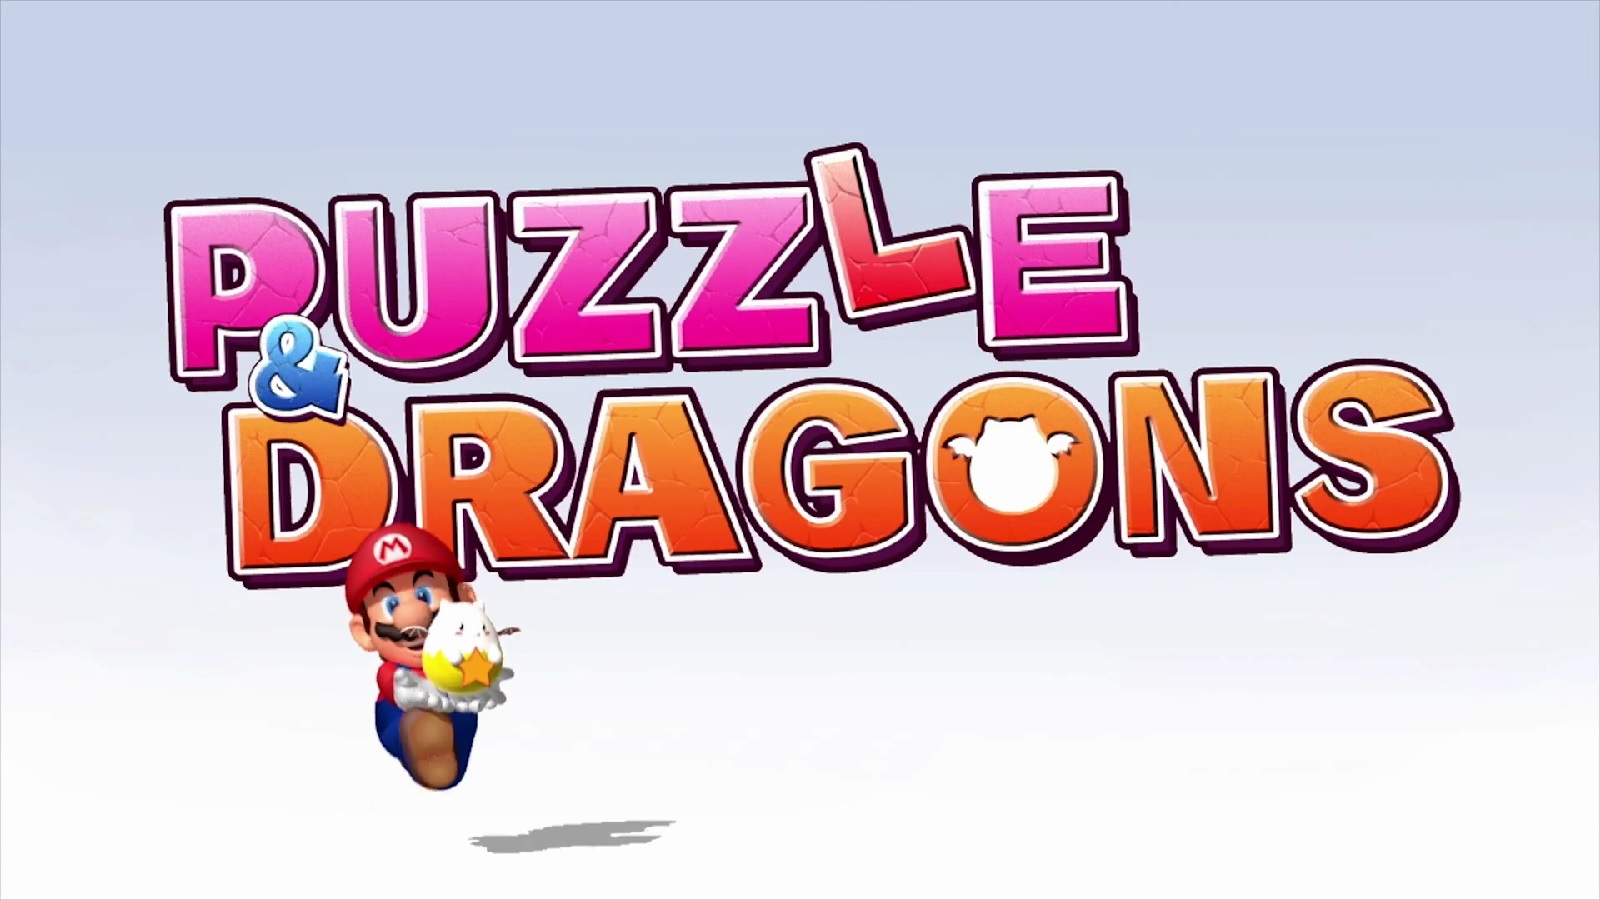 Nice Jigsaw Puzzle Epic Tall Thomas Kinkade Puzzles Solid Wheel Of Fortune Bonus Puzzle Wooden Block Puzzle Free Youthful Word Search Puzzles BlueWord Search Puzzles Online German Puzzle \u0026 Dragons Z   Puzzle \u0026 Dragons: Super Mario Bros ..